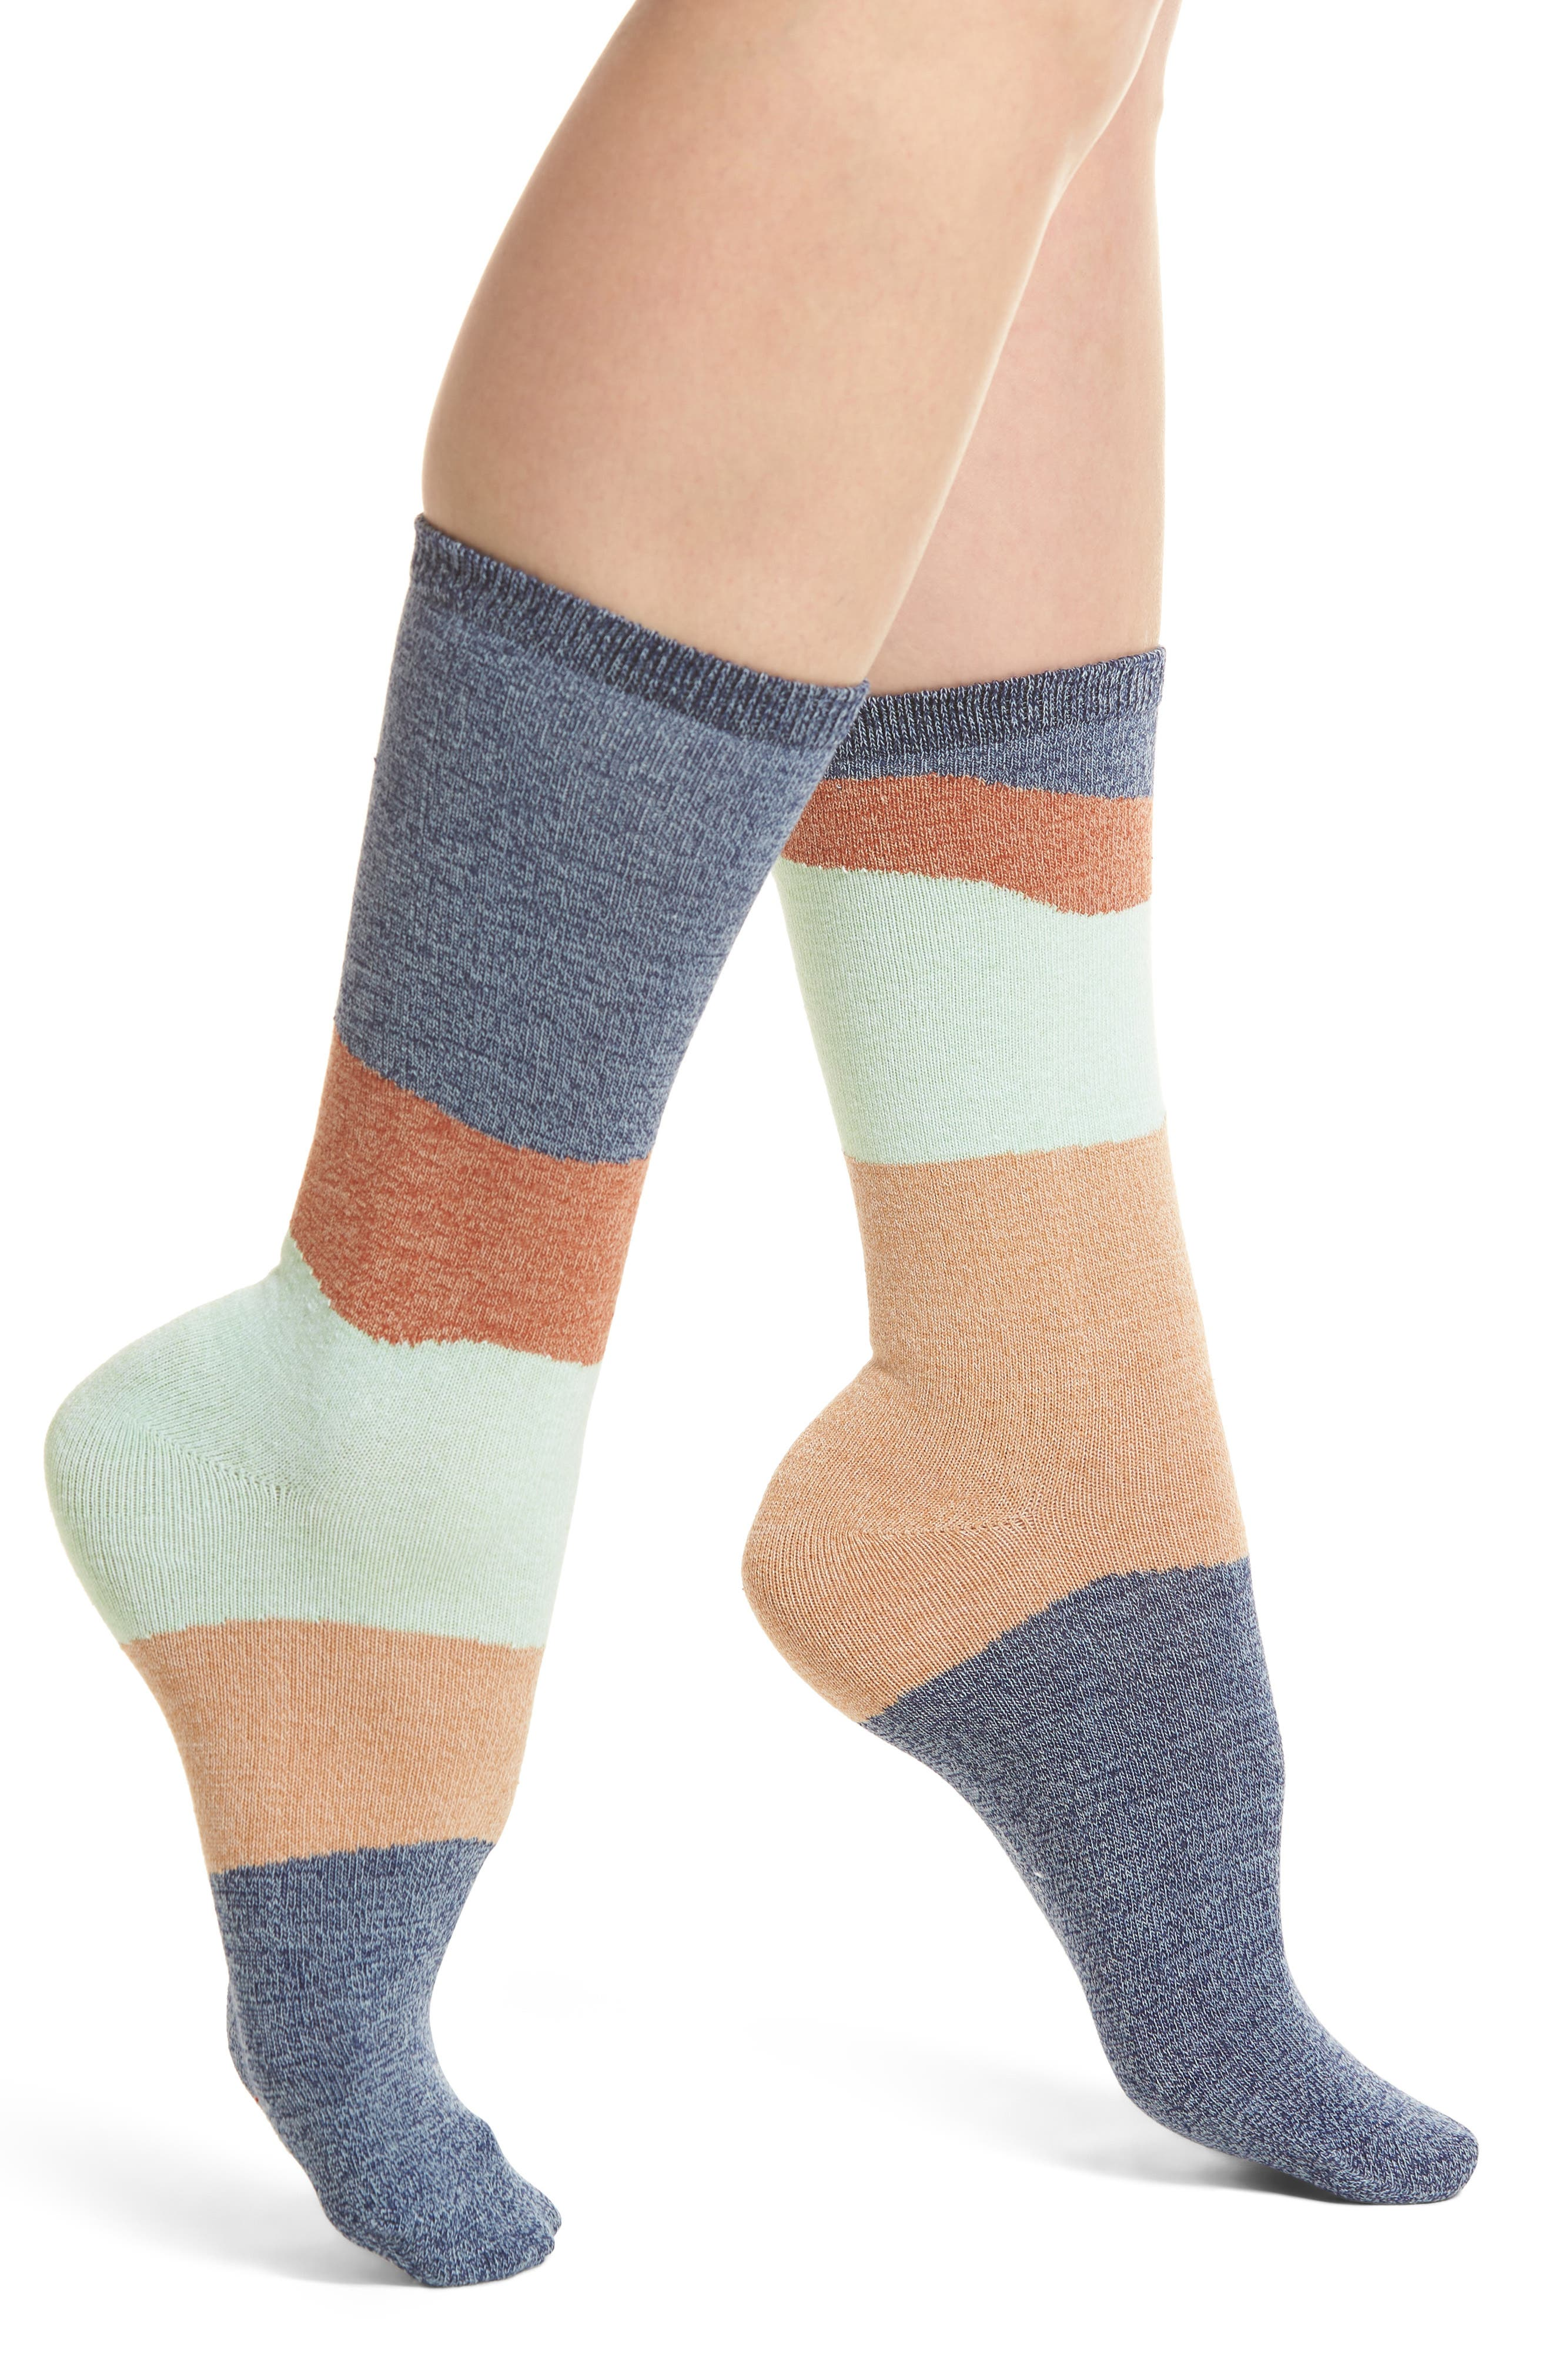 Addie Classic Crew Socks,                             Main thumbnail 1, color,                             410